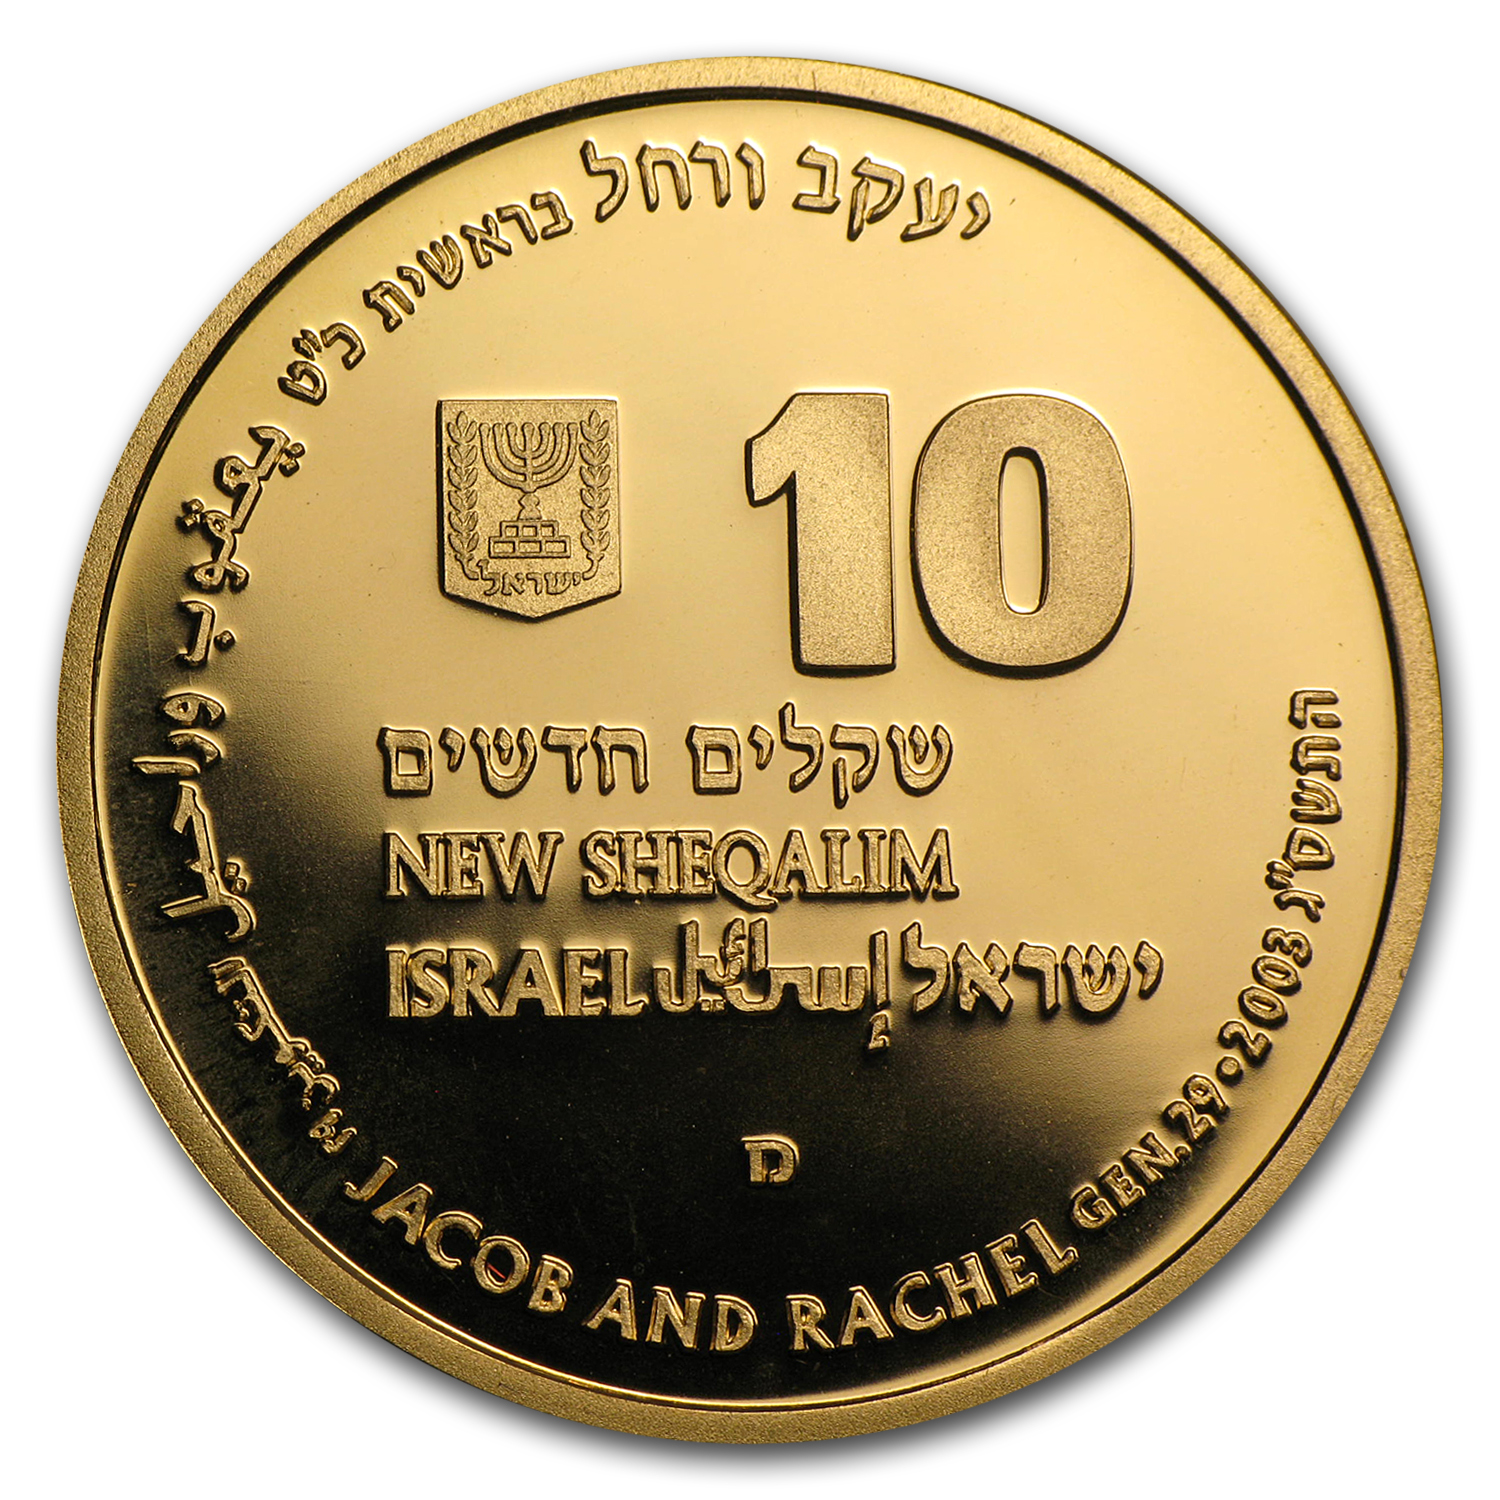 2003 Israel 1/2 oz Proof Gold Jacob and Rachel (w/Box & COA)